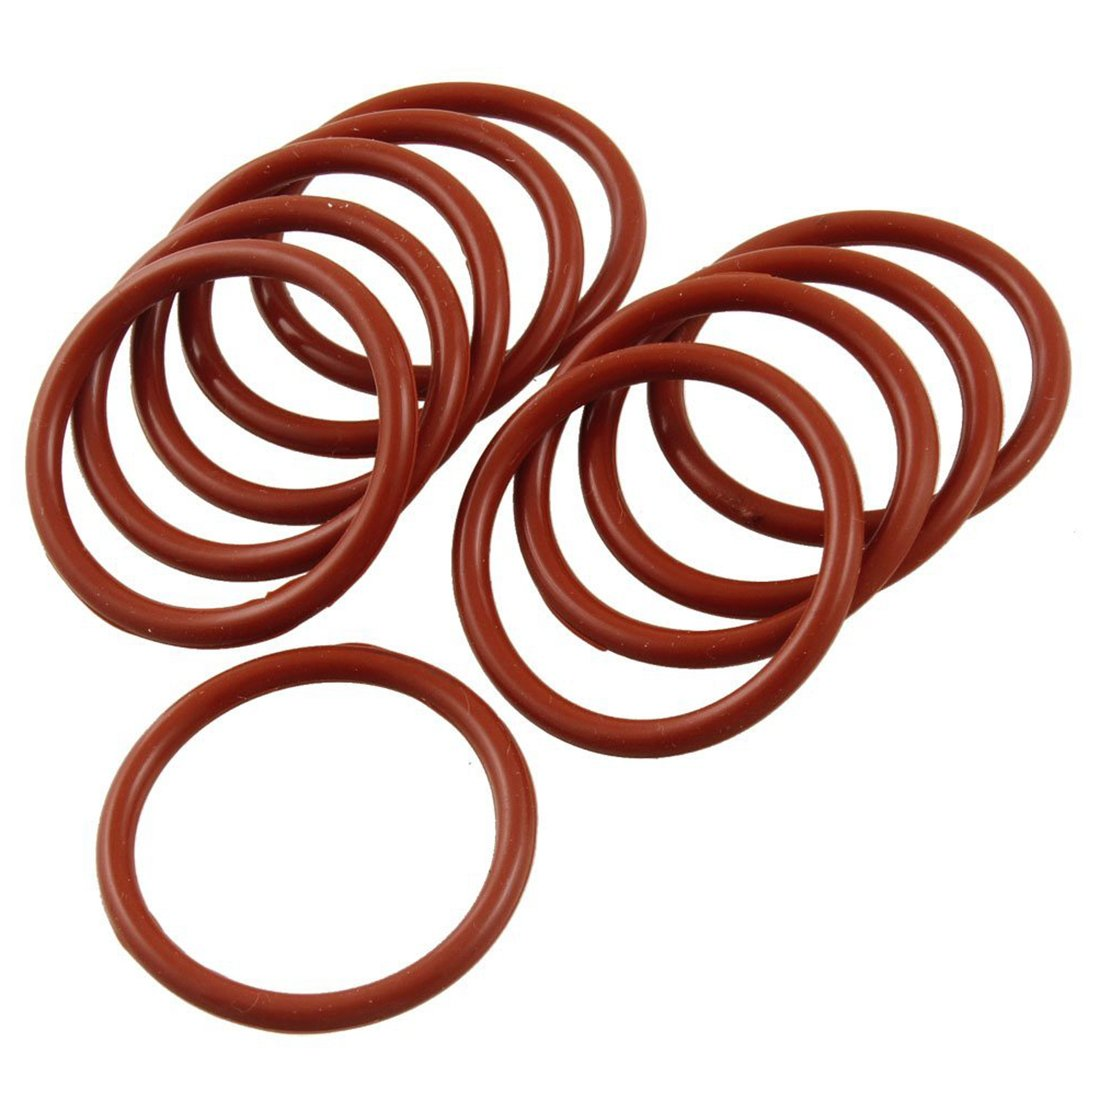 O Ring - TOOGOO(R) 10 PCS Flexible Silikon O Ring Dichtung Dichtungsring 33 mm x 40 mm x 3, 5 mm